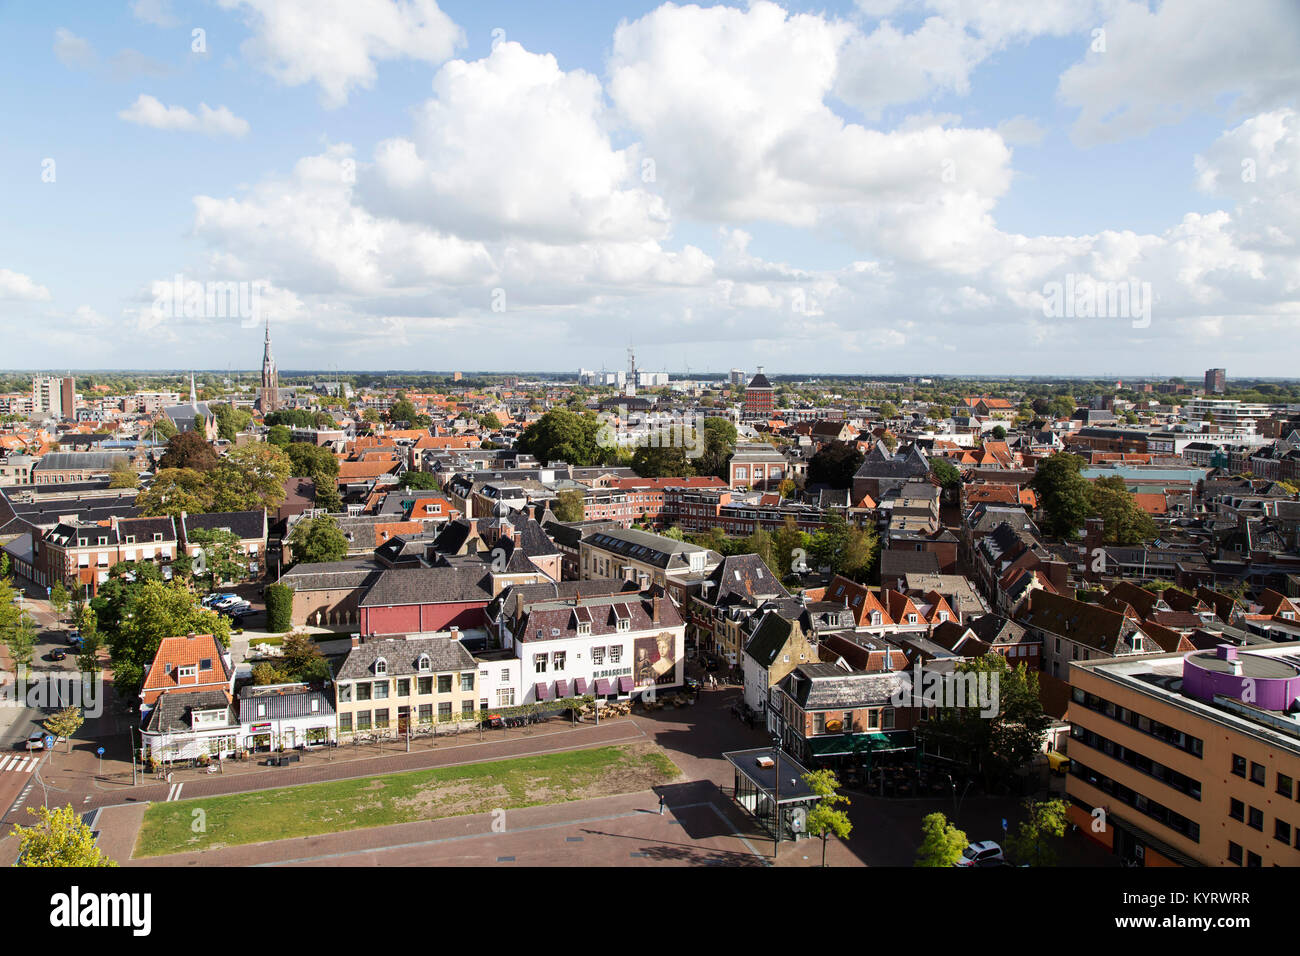 Rooftops in the city of Leeuwarden, the Netherlands. Leeuwarden is a European Capital of Culture in 2018. - Stock Image